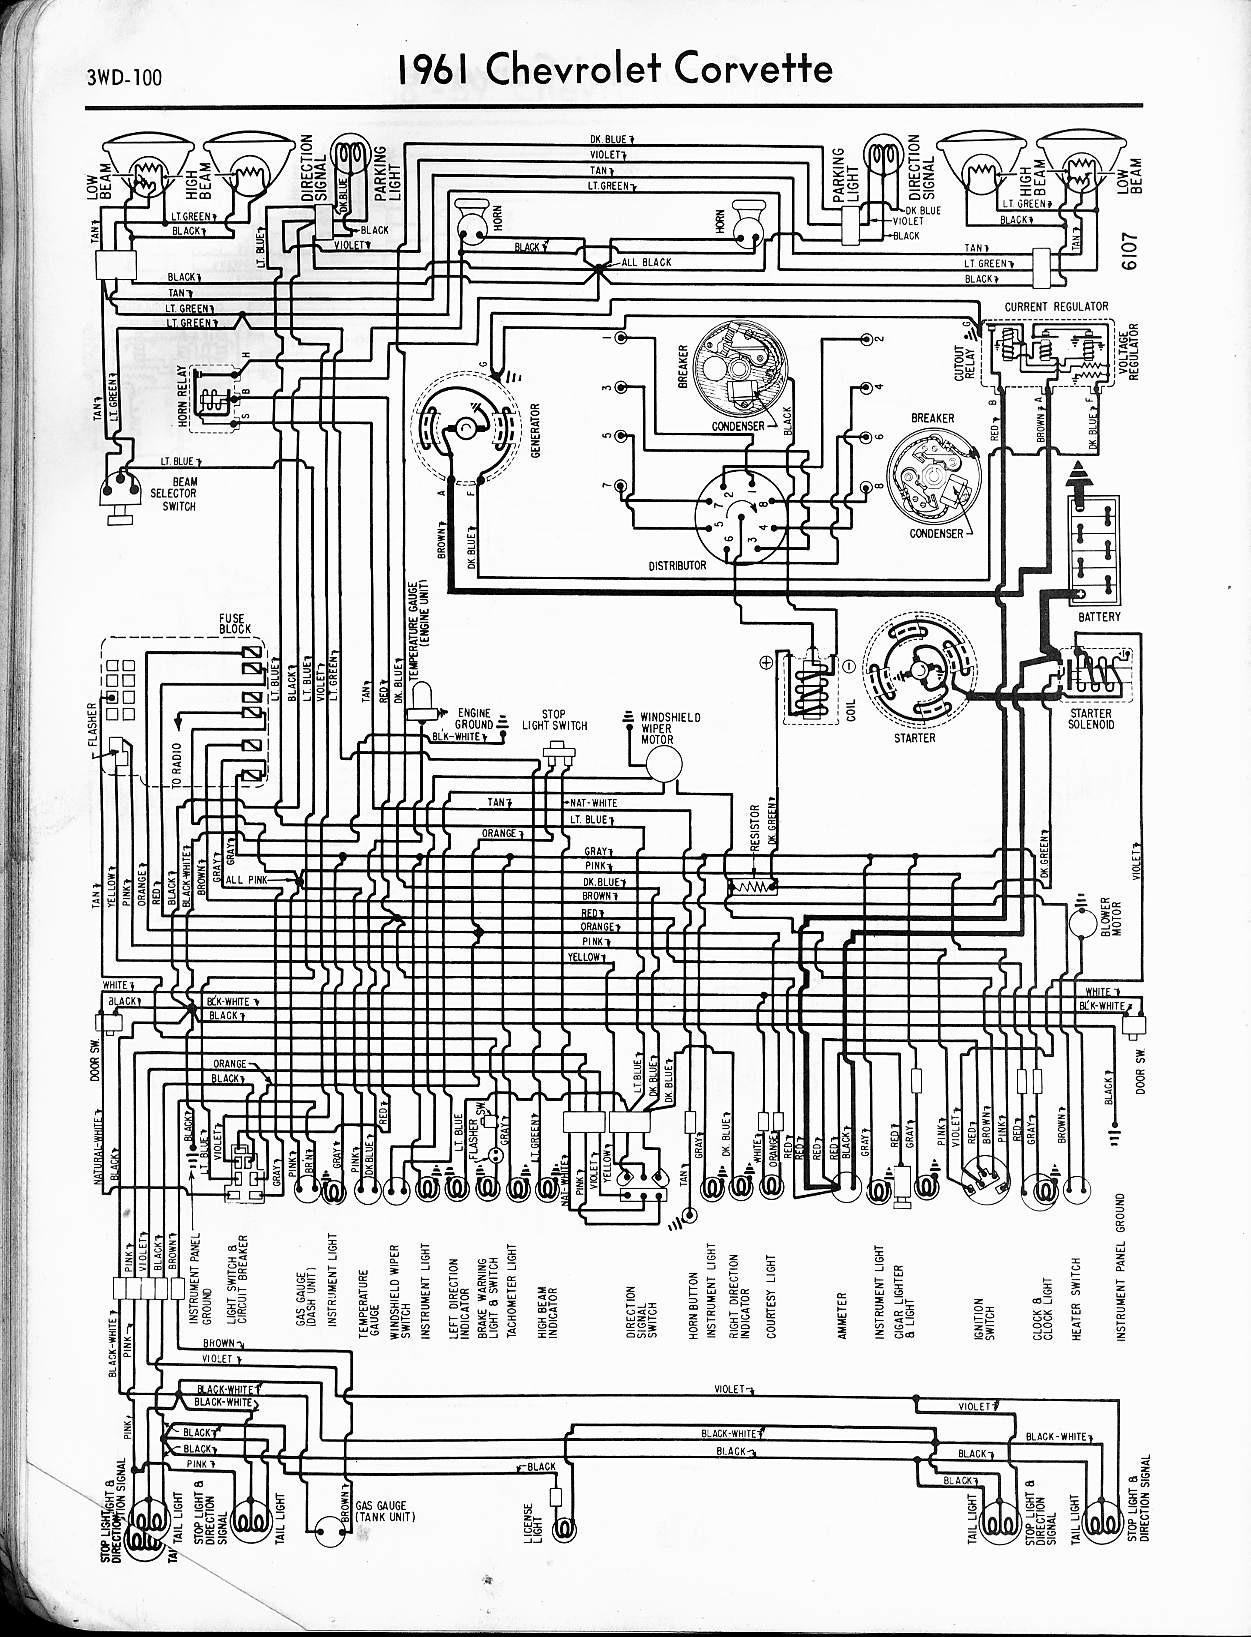 1979 chevy wiring diagram u2022 wiring diagram image information 05 Acura  MDX Fuse Box 2002 Acura MDX Fuse Diagram